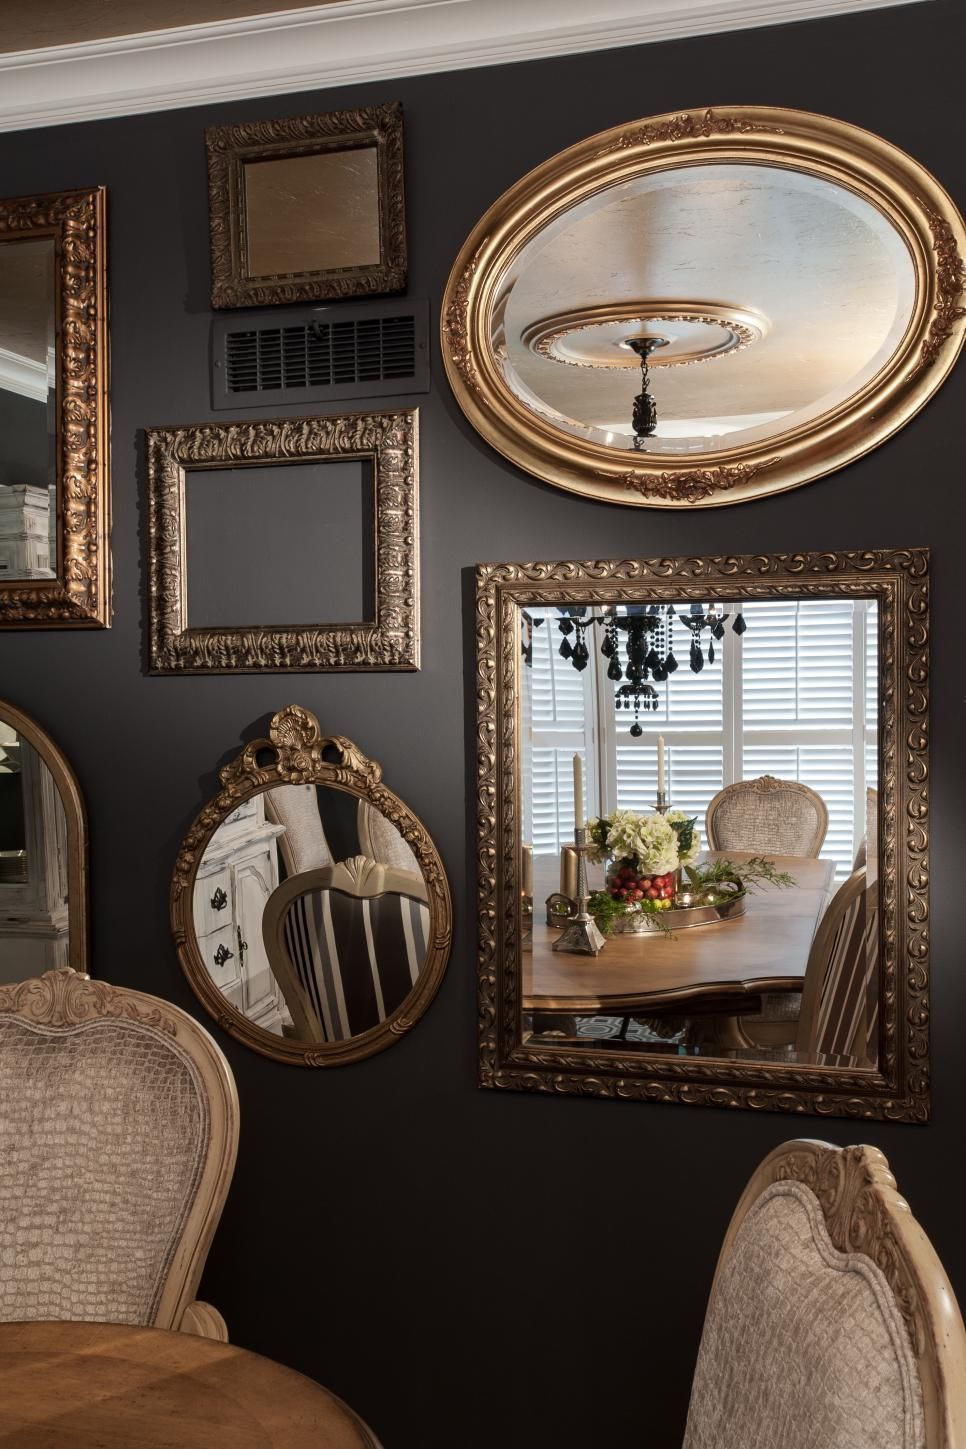 6 Stunning Tips And Tricks Black Wall Mirror Tile Circle Wall Mirror Bedroom Silver Wall Mirror Mirror Gallery Wall Mirror Dining Room Mirror Wall Living Room